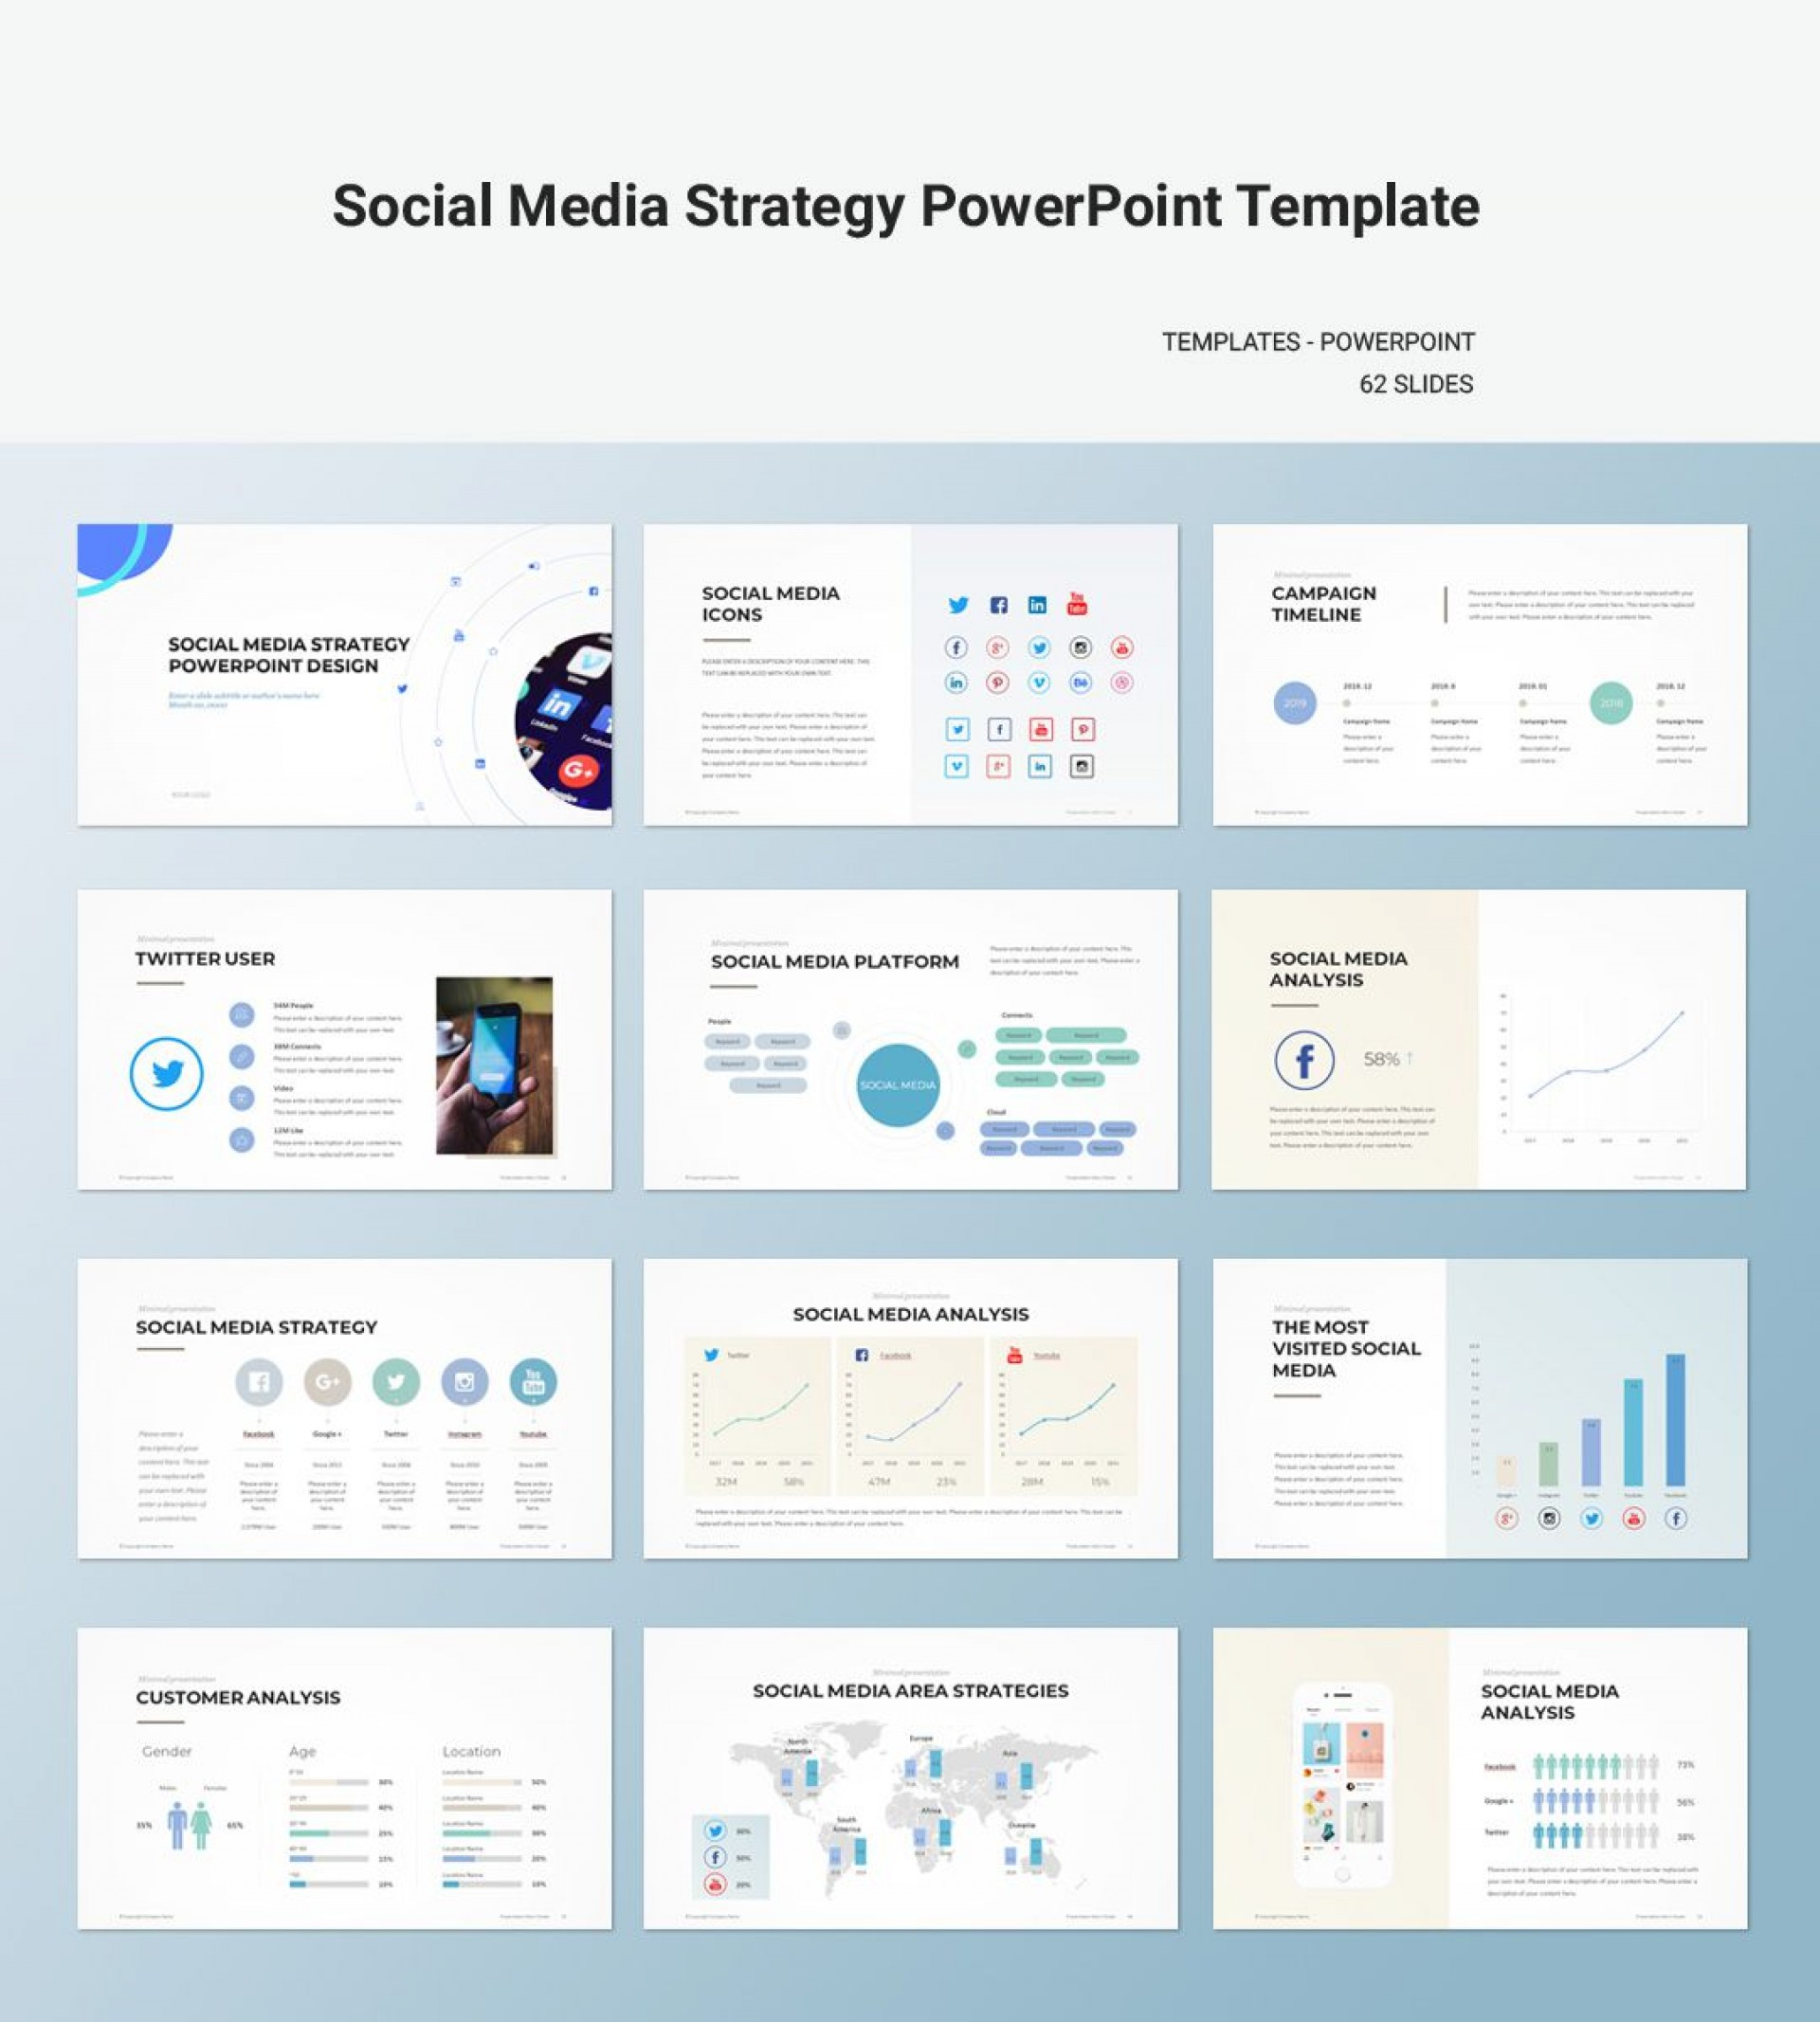 008 Top Social Media Strategy Powerpoint Template High Resolution  Marketing Plan Free1920